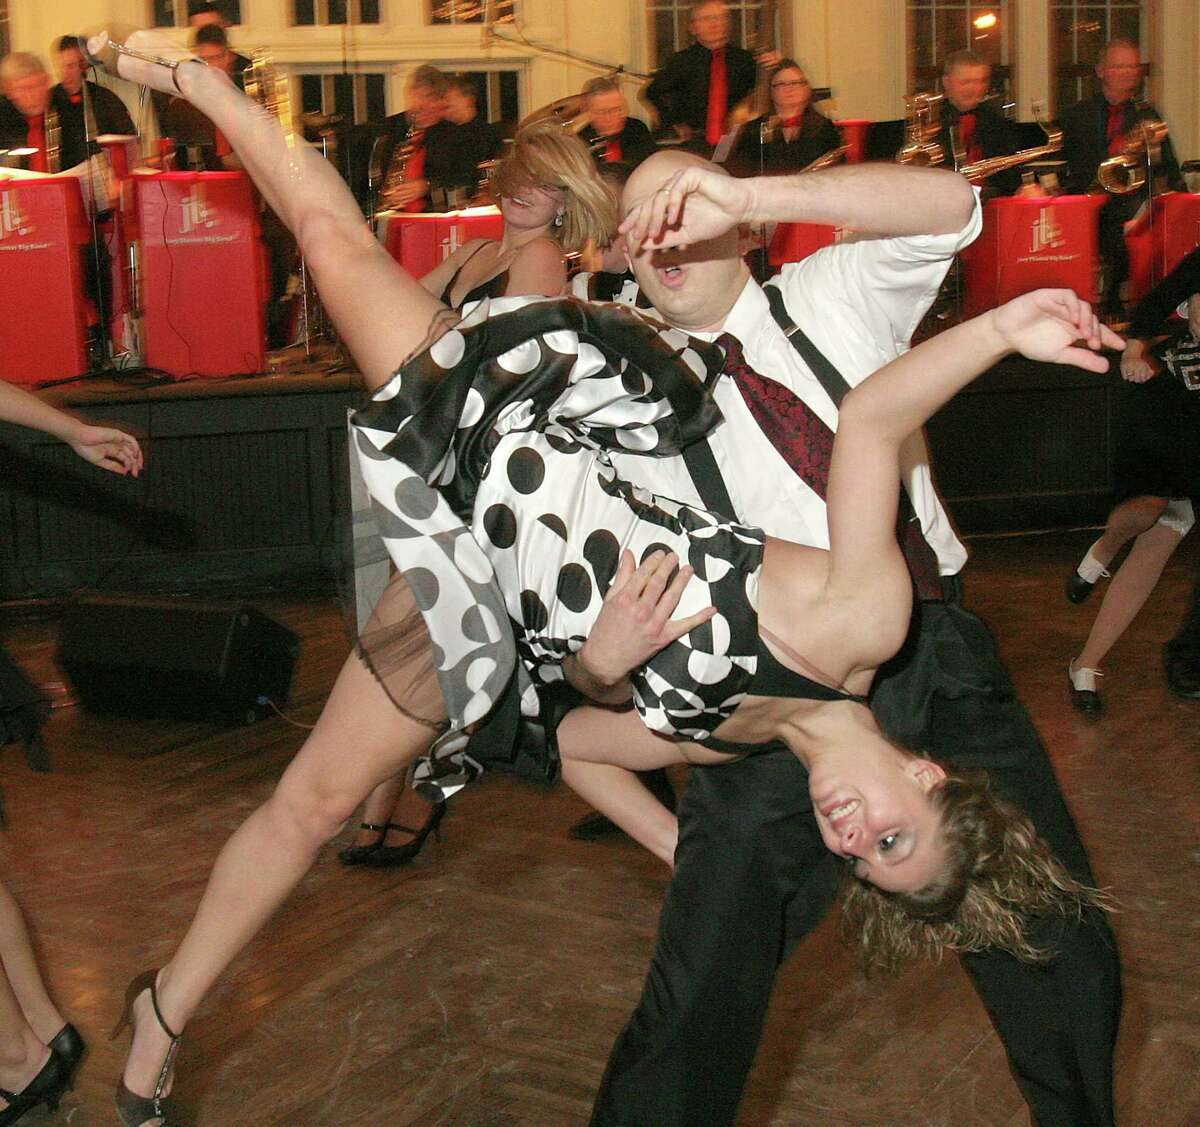 Saratoga Springs, NY - December 12, 2008 - (Photo by Joe Putrock/Special to the Times Union) - Aaron Romano(back) sends Brittany Bush(front) for a whirl on the dance floor at Dancing with the Capital Region Stars Annual Holiday Gala to benefit the Saratoga Springs History Museum.